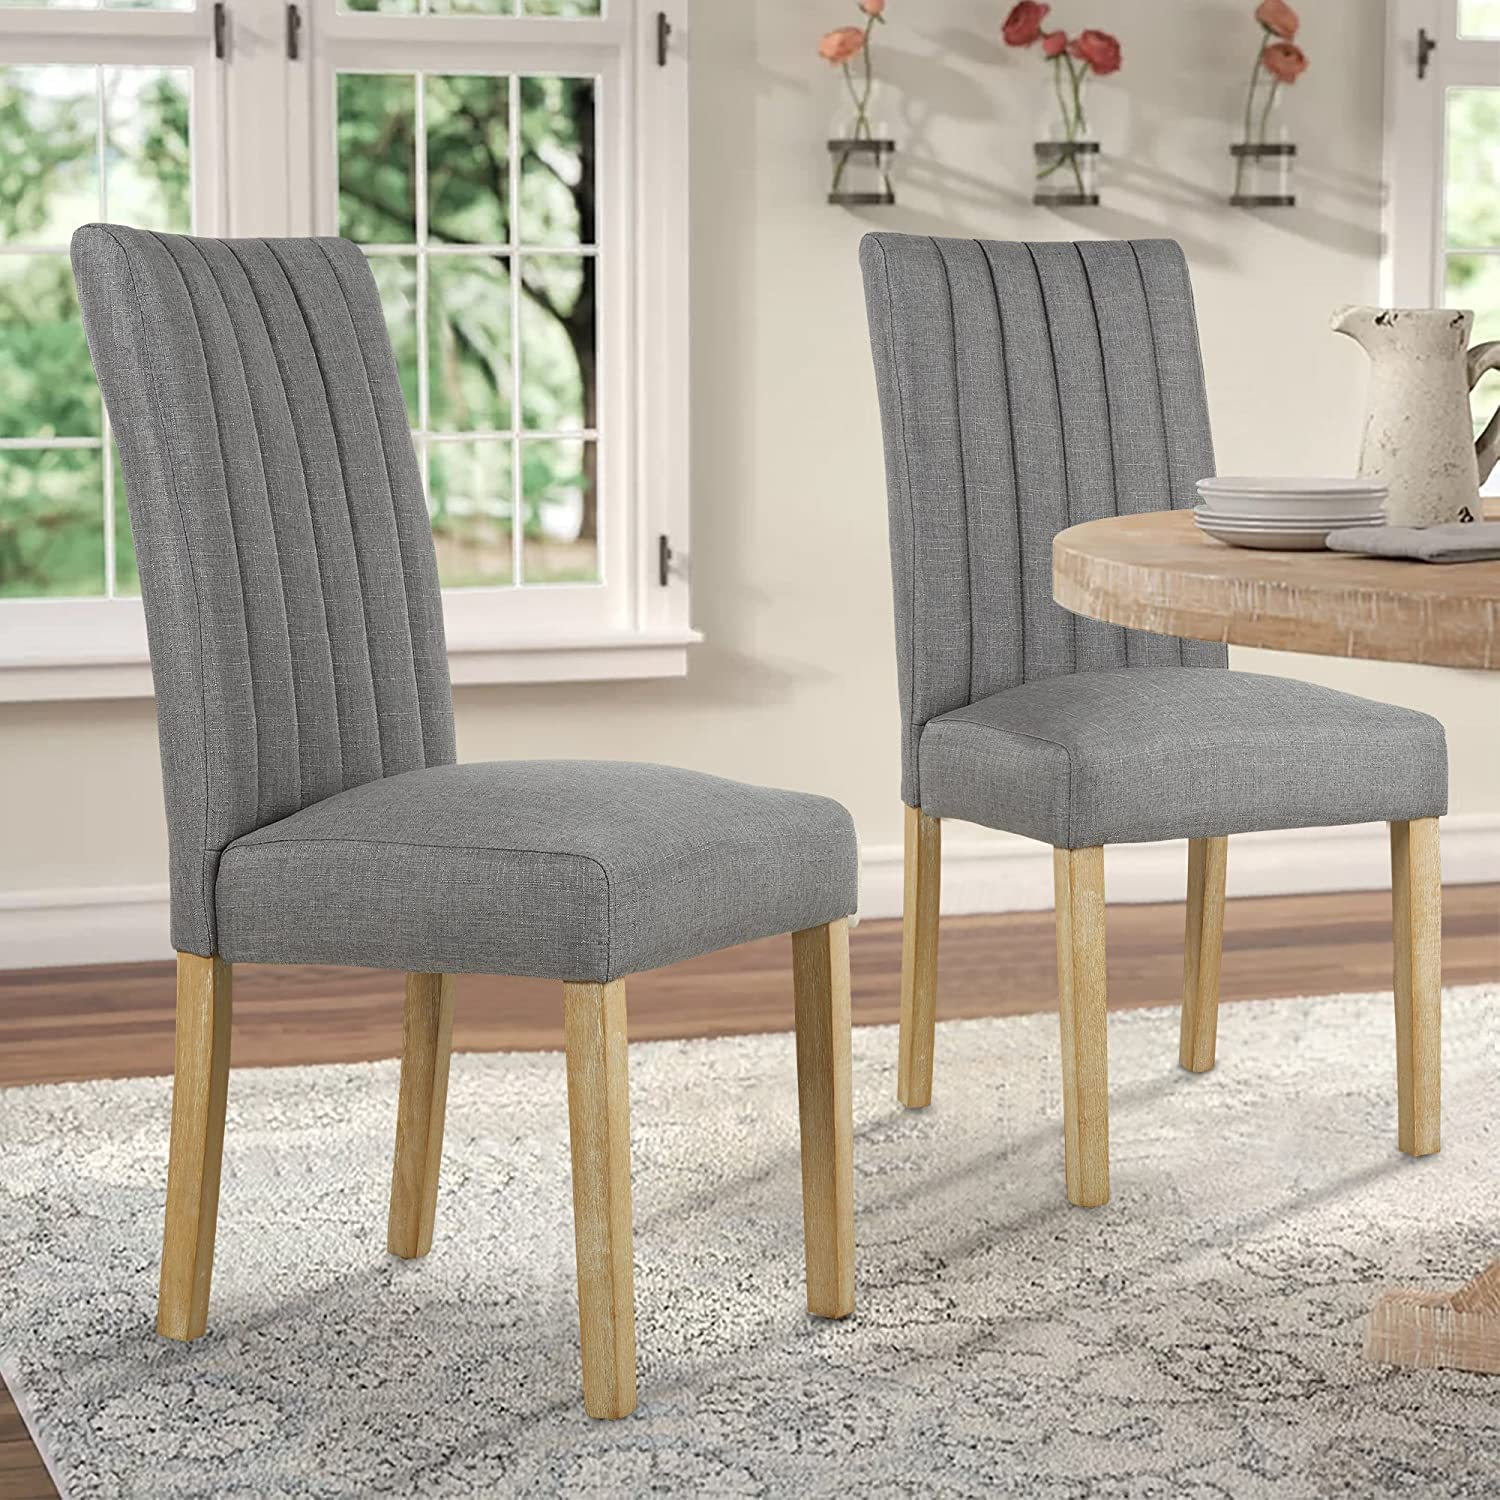 LSSBOUGHT Upholstered Fabric Parsons Dining Chairs, Set of 2, Gray